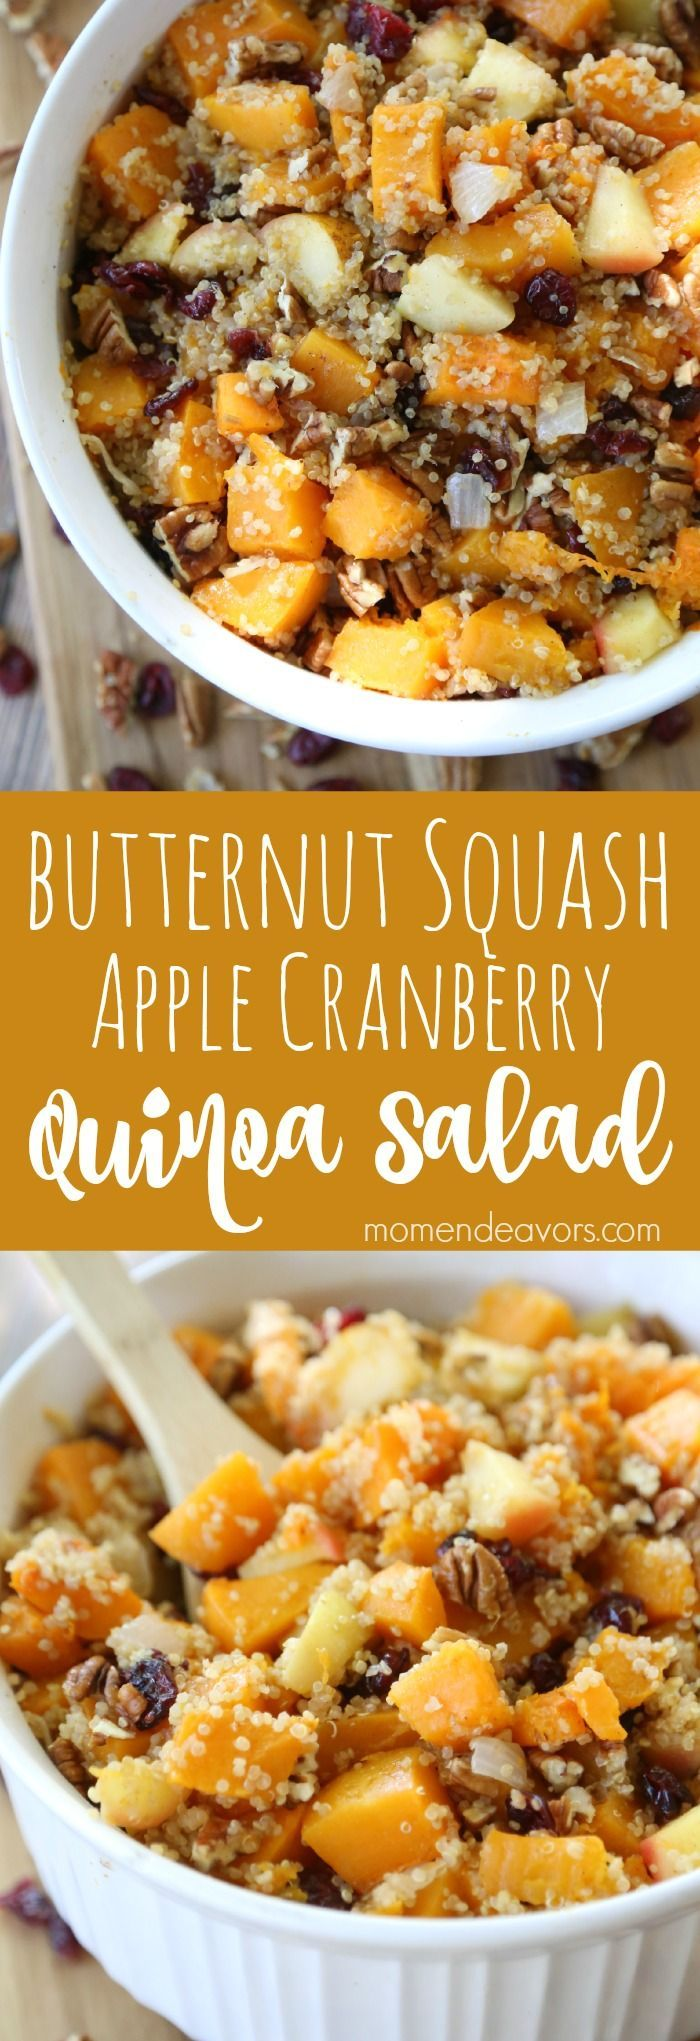 Fall Harvest Quinoa Salad with Butternut Squash, Apples, and Cranberries. #recipetwist #ad